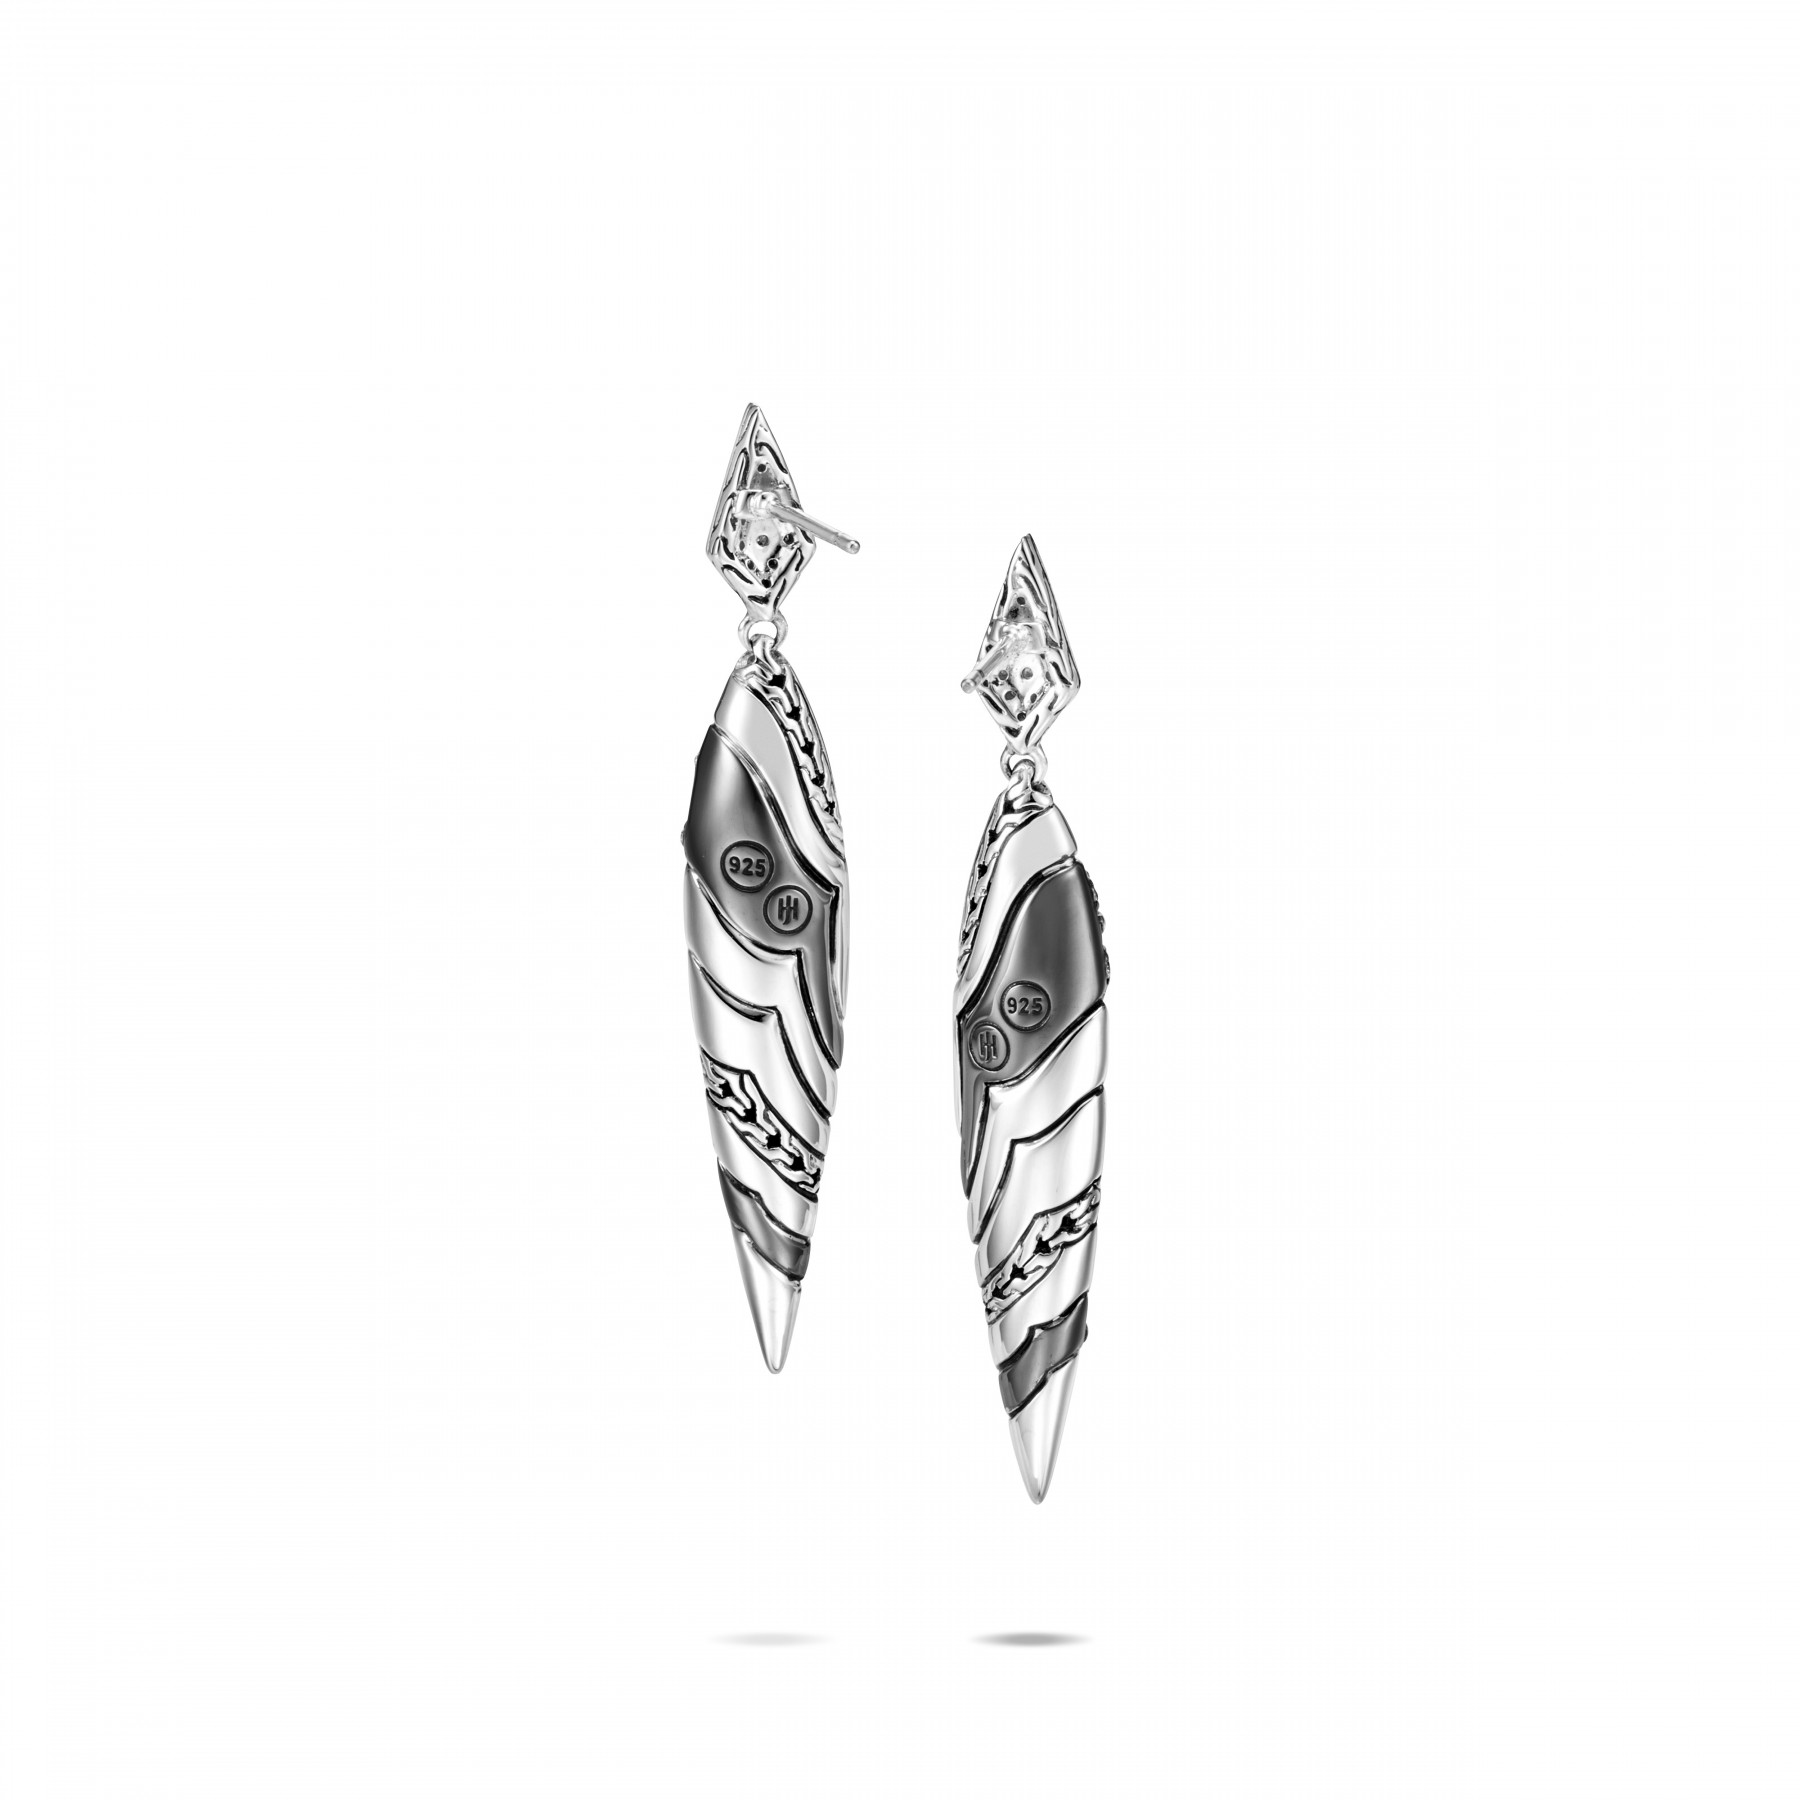 John Hardy Lahar White and Grey Diamond Spear Earrings back view